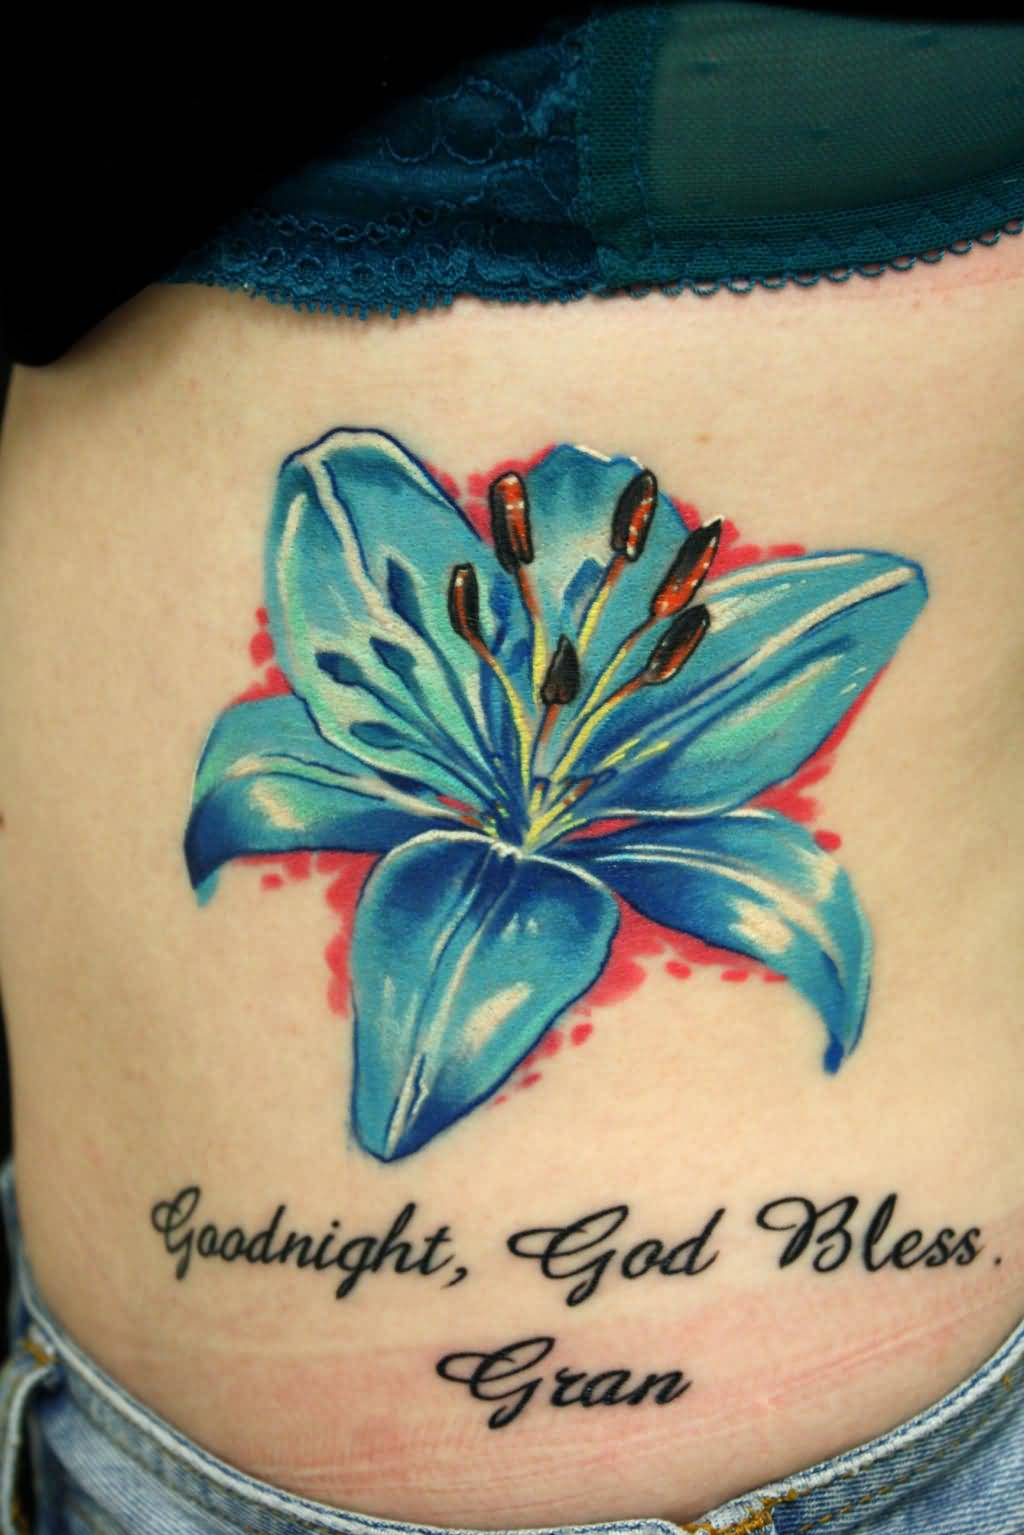 Blue lily flower tattoo tattooshunter blue lily flower tattoo izmirmasajfo